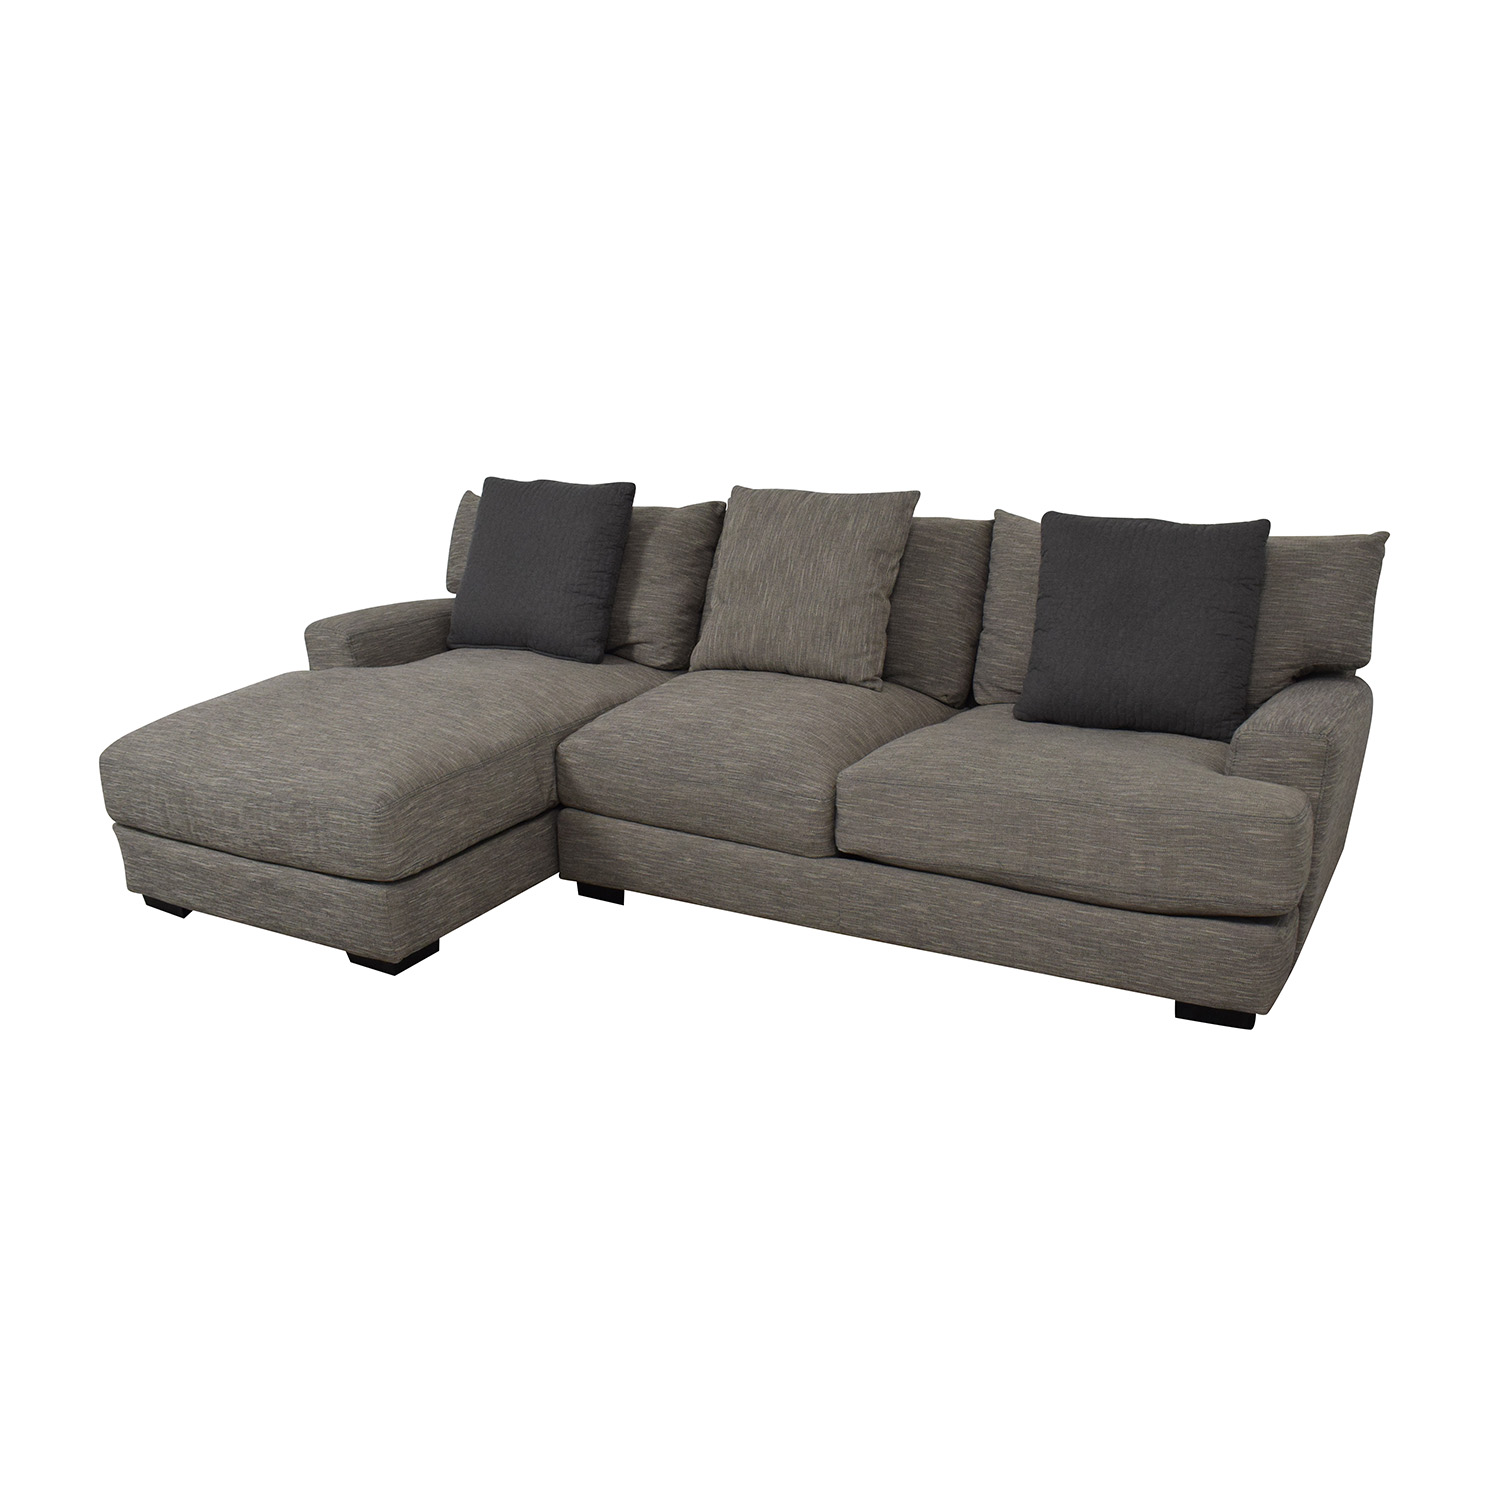 Raymour & Flanigan Raymour & Flanigan Leighton Two-Piece Sectional Sofa nj